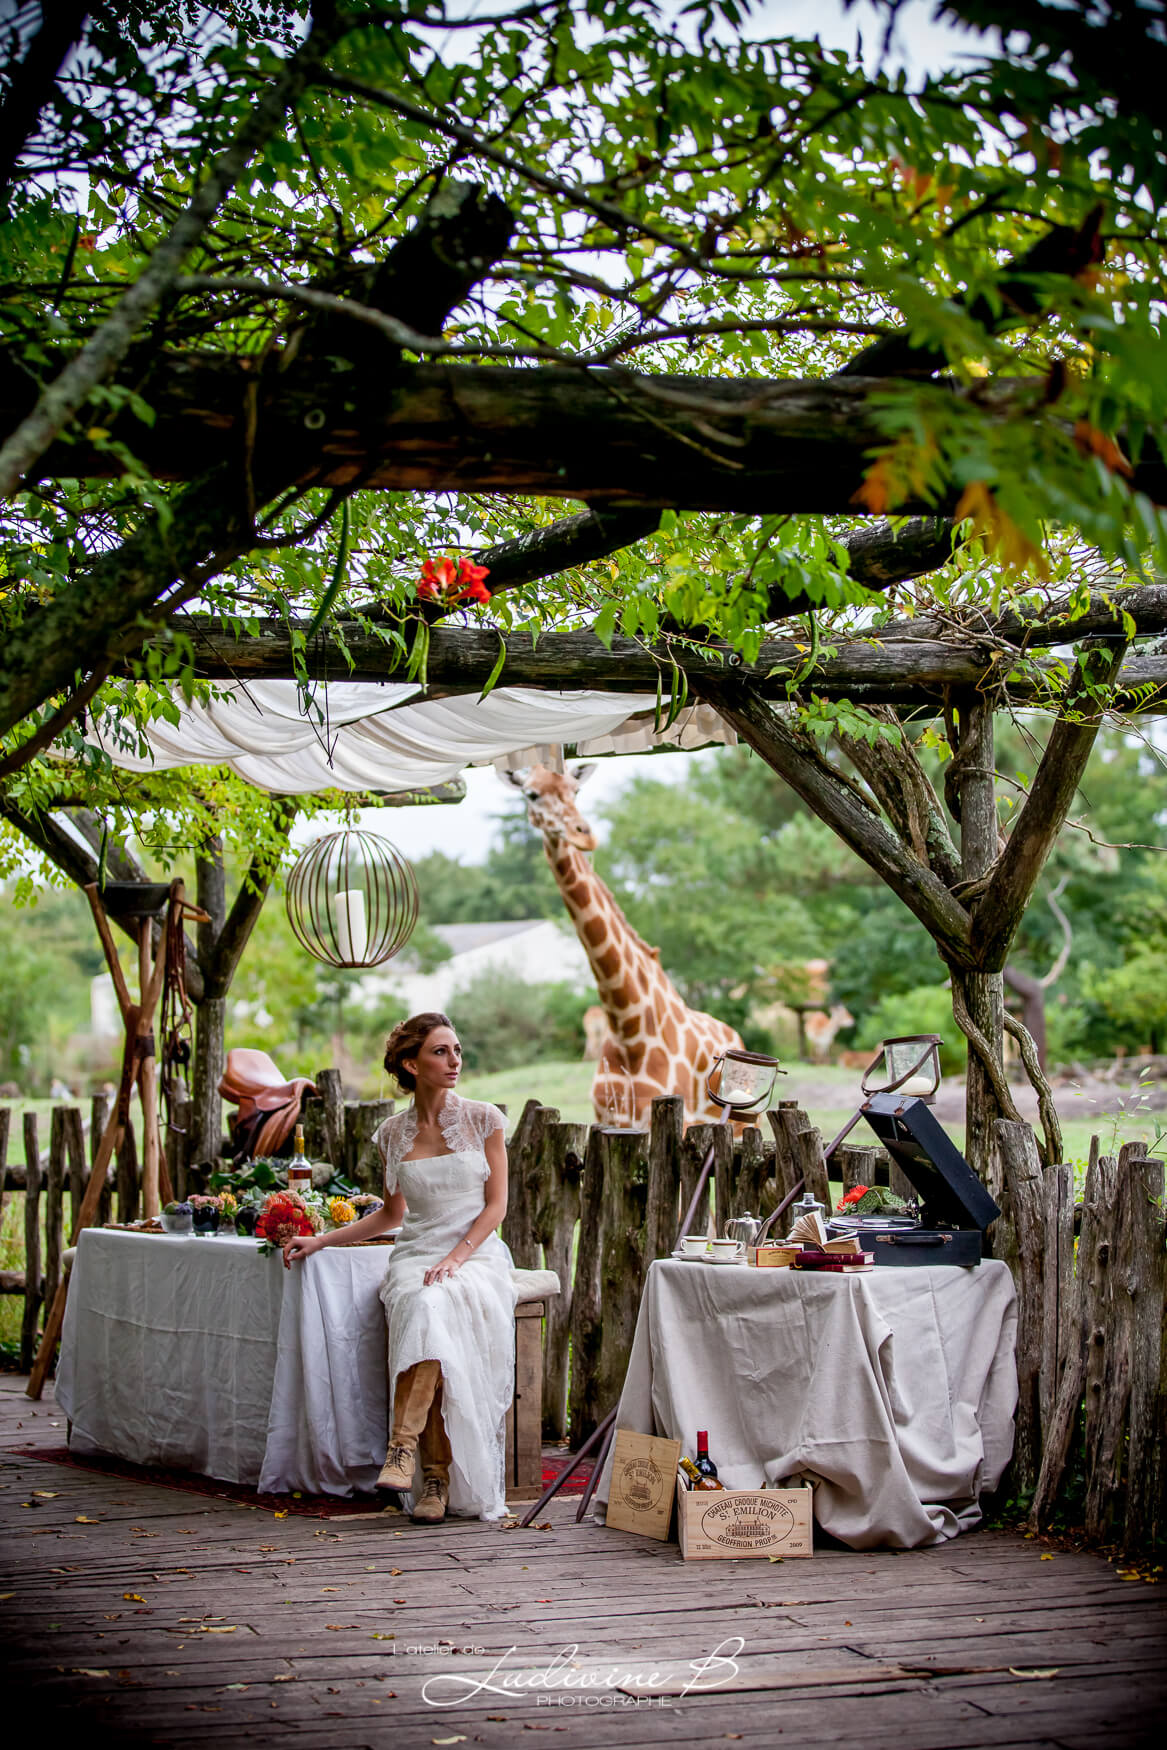 mariage out of Africa, inspiration africaine